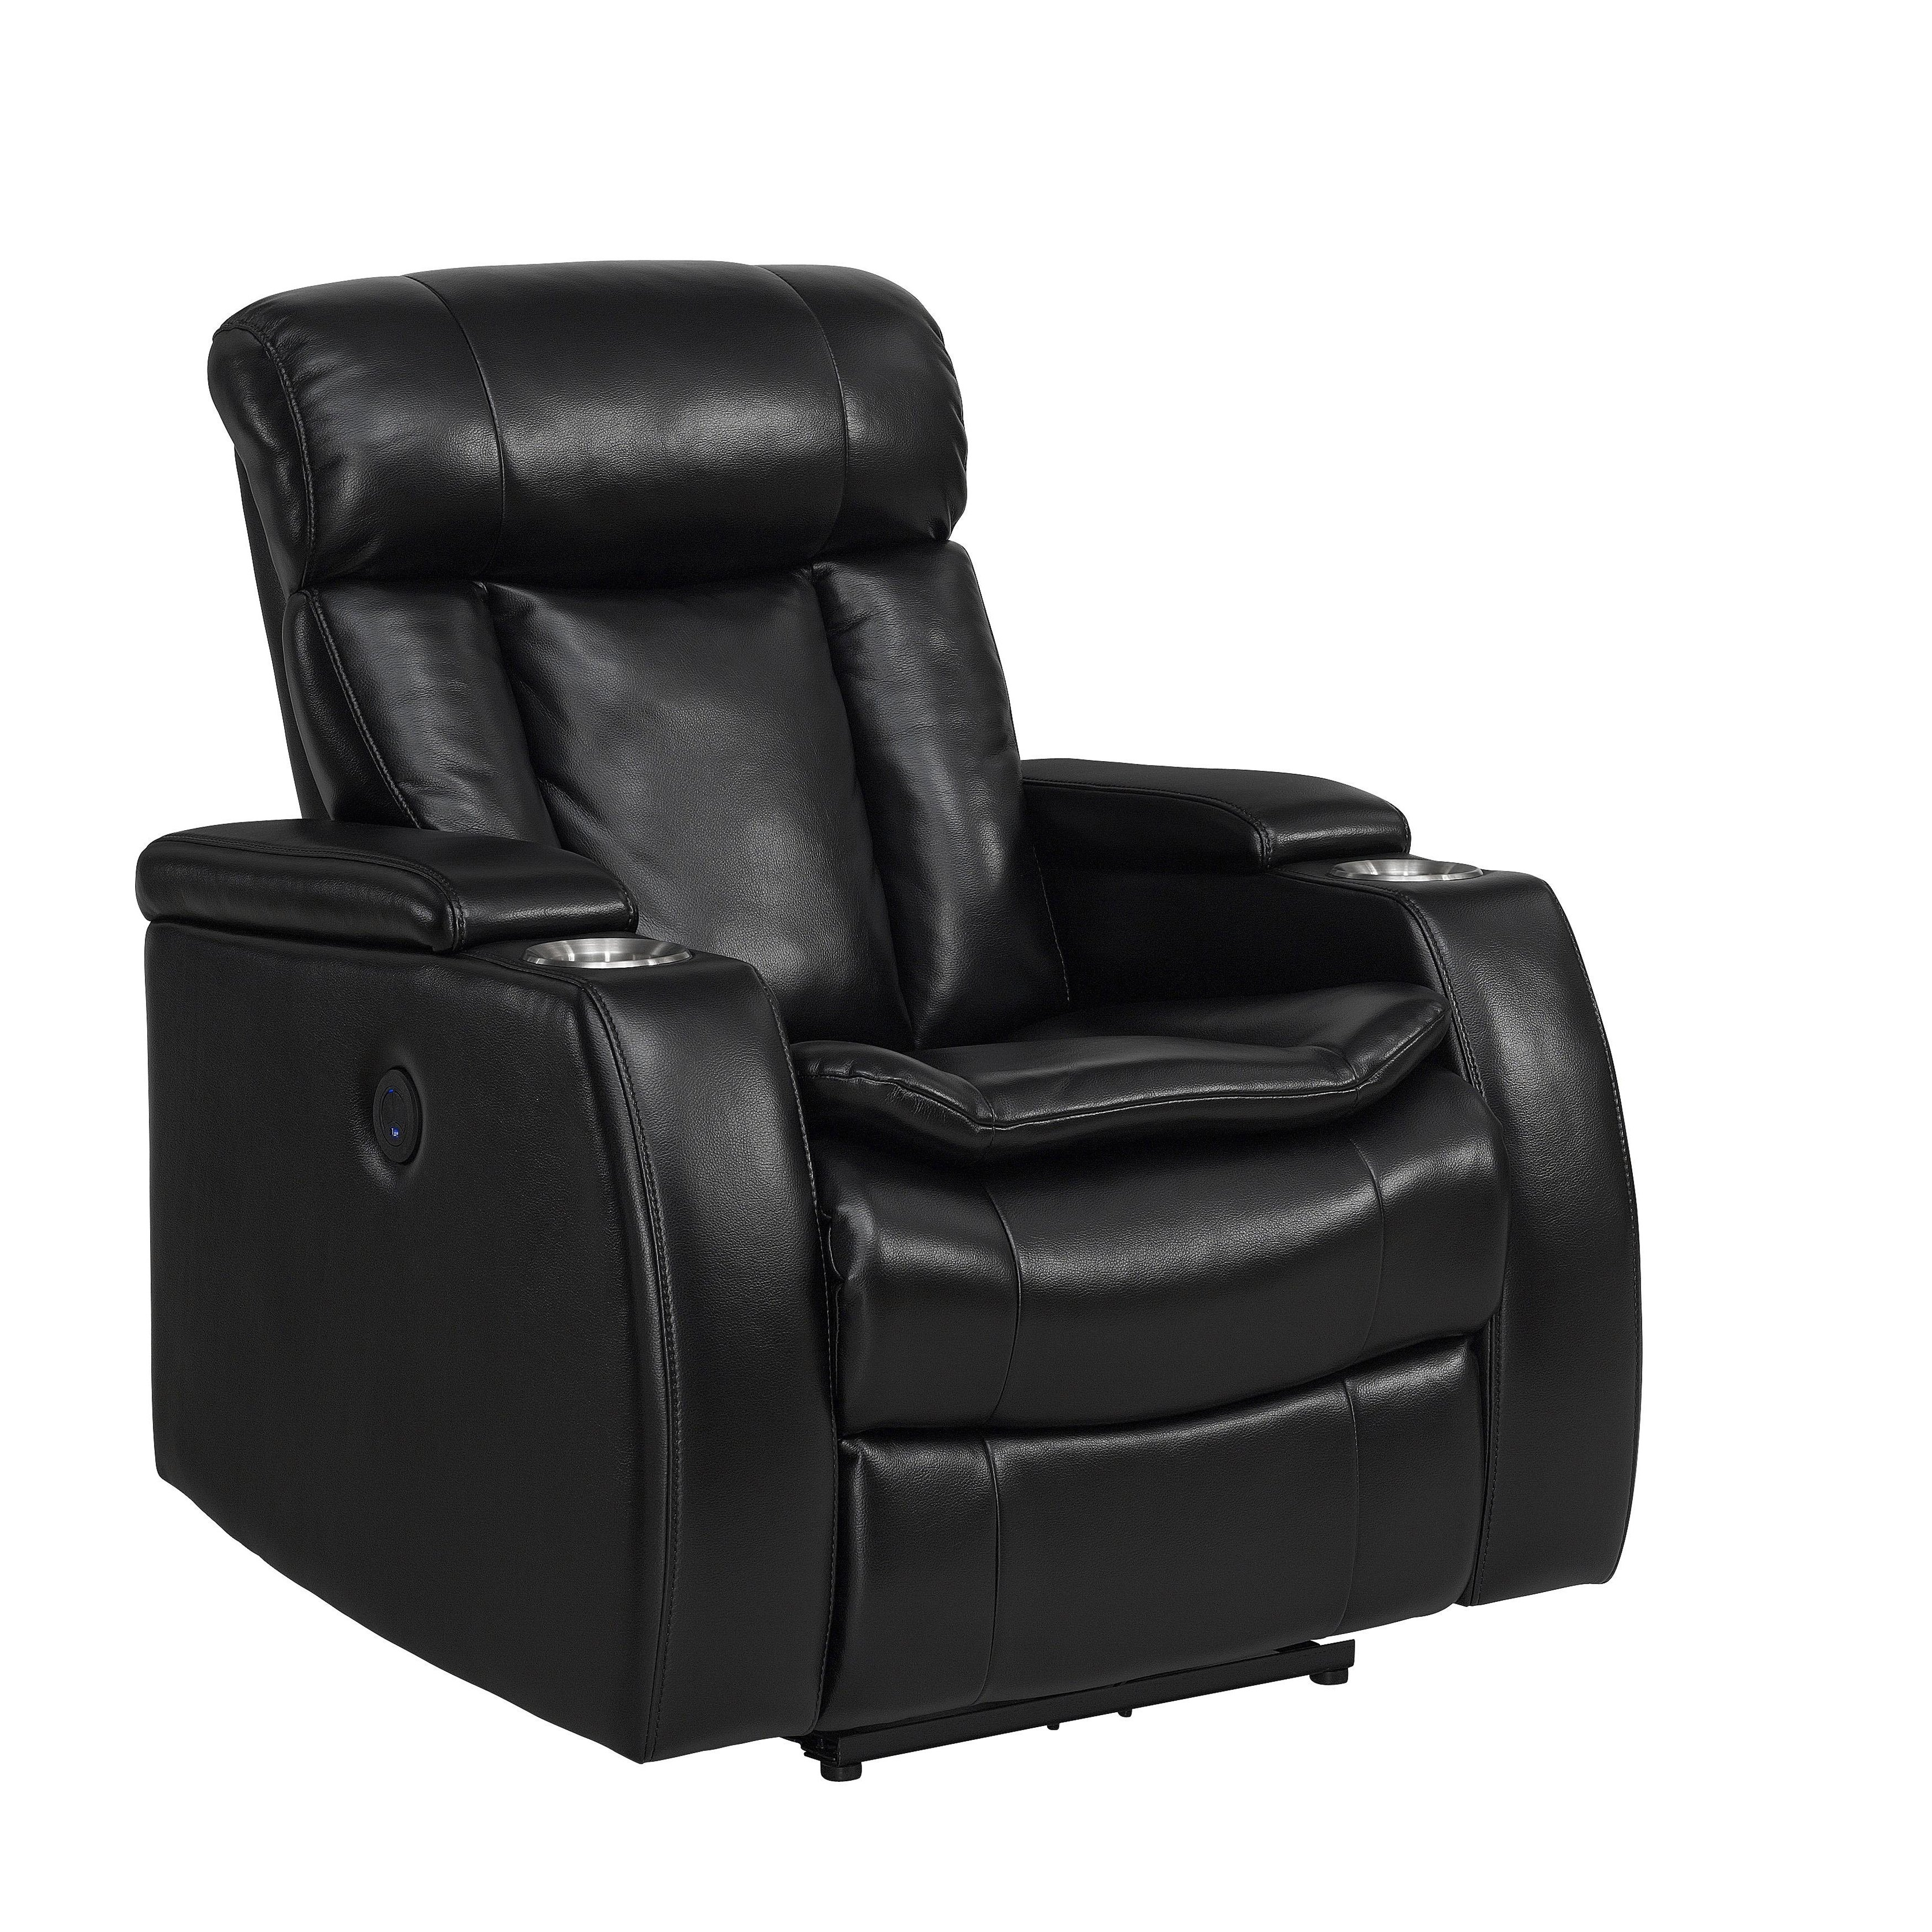 Power Recliner Chairs. Display Product Reviews For Cary Charcoal inside Clyde Grey Leather 3 Piece Power Reclining Sectionals With Pwr Hdrst & Usb (Image 27 of 30)